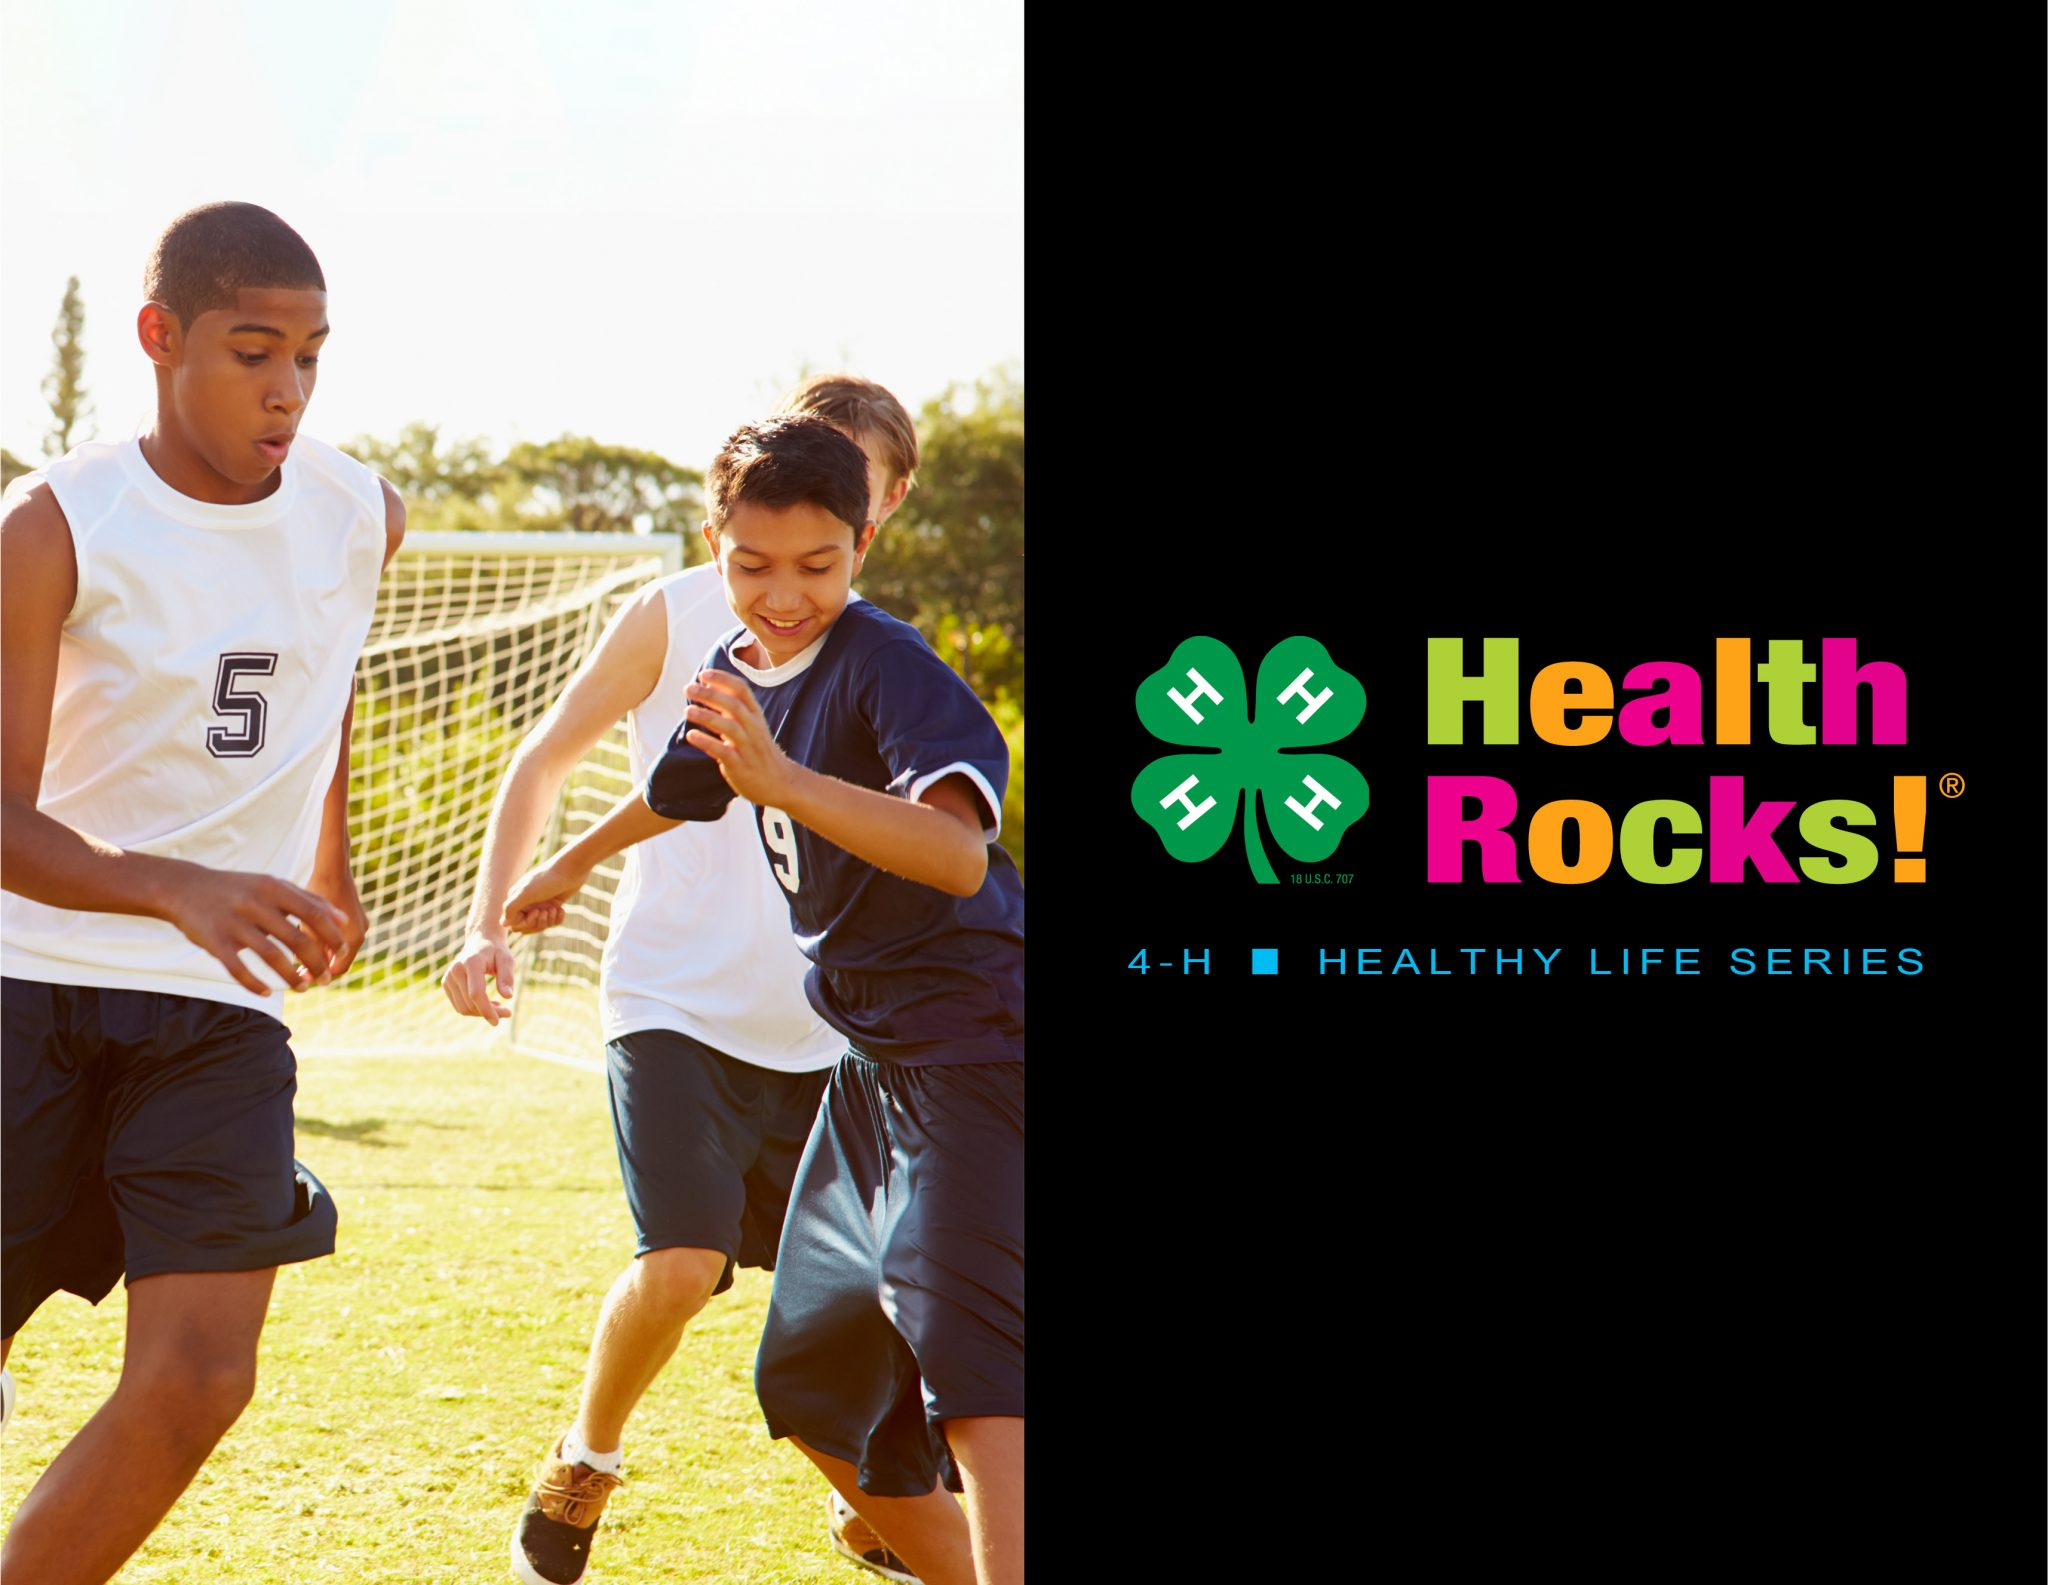 a group of middle school youth play team soccer with official 4-H Health Rocks!® logo.